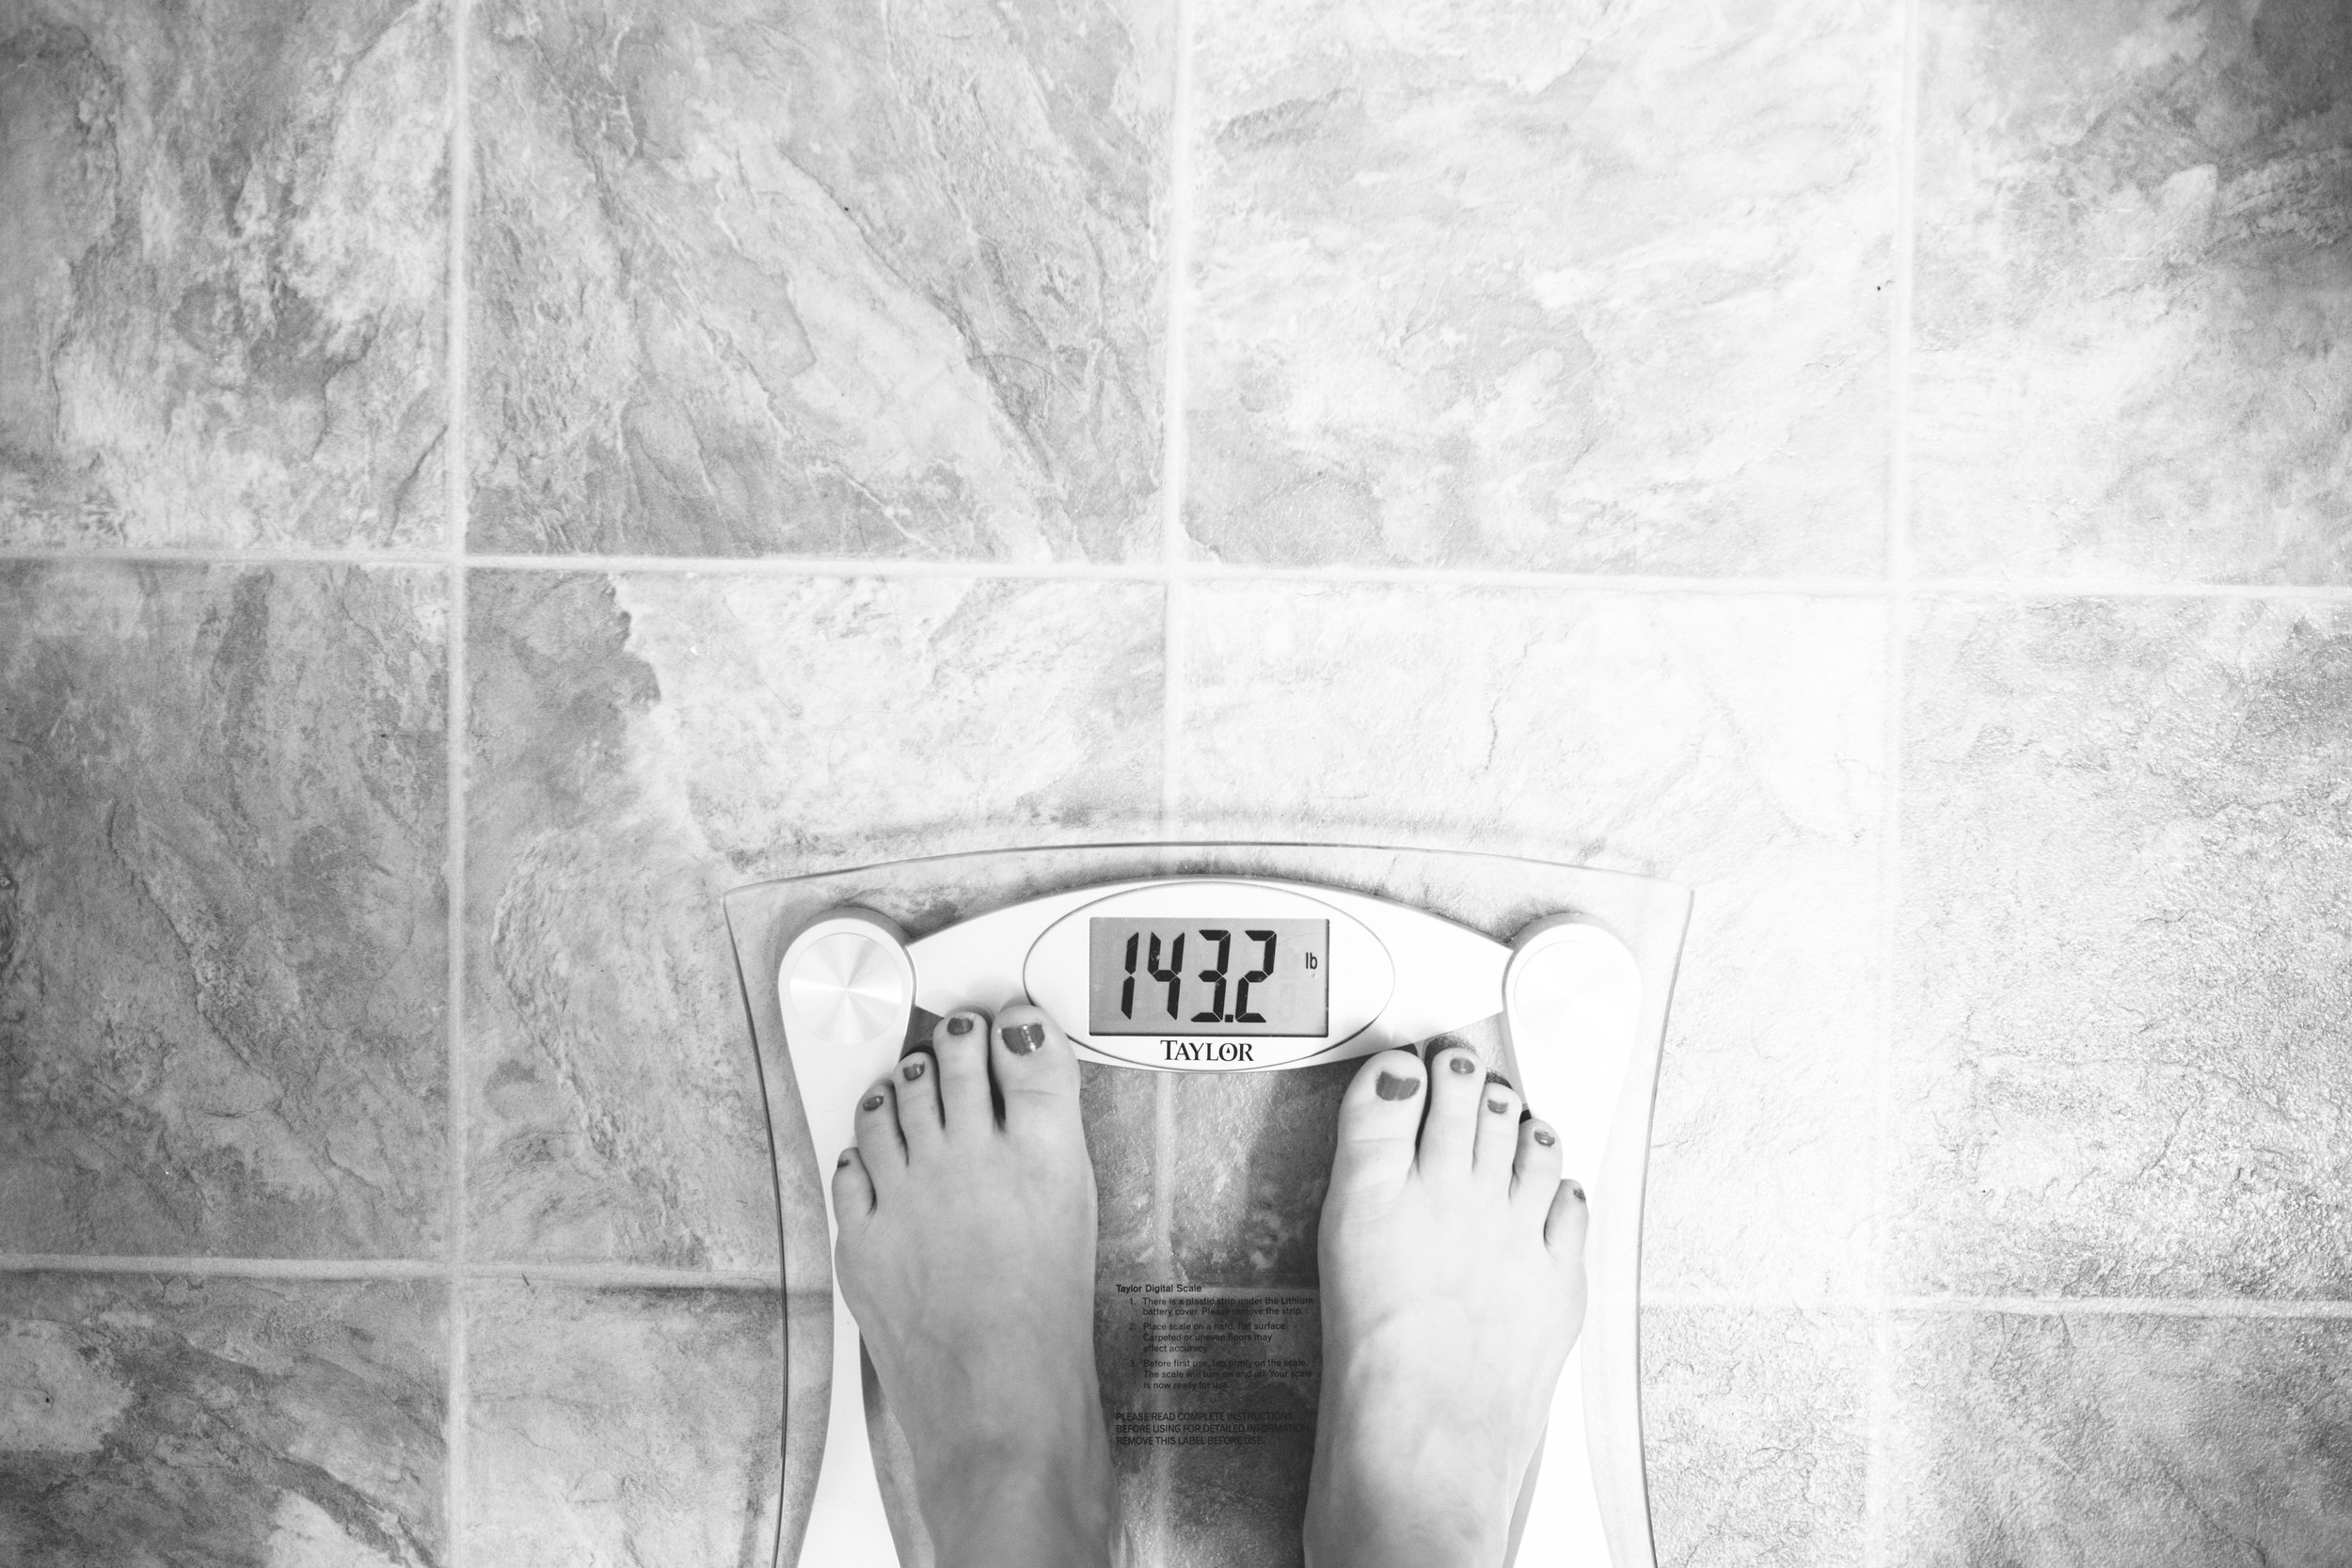 I got down to 135 from 155 because I didn't know I was a type 1 diabetic haha (you loose a lot of weight when you have high blood sugar for a long time). I really enjoyed the weight loss but I was literally dying on the inside. Happy to be a chubby pregnant person right now! I'd rather have my health in good shape than a nice number on the scale.